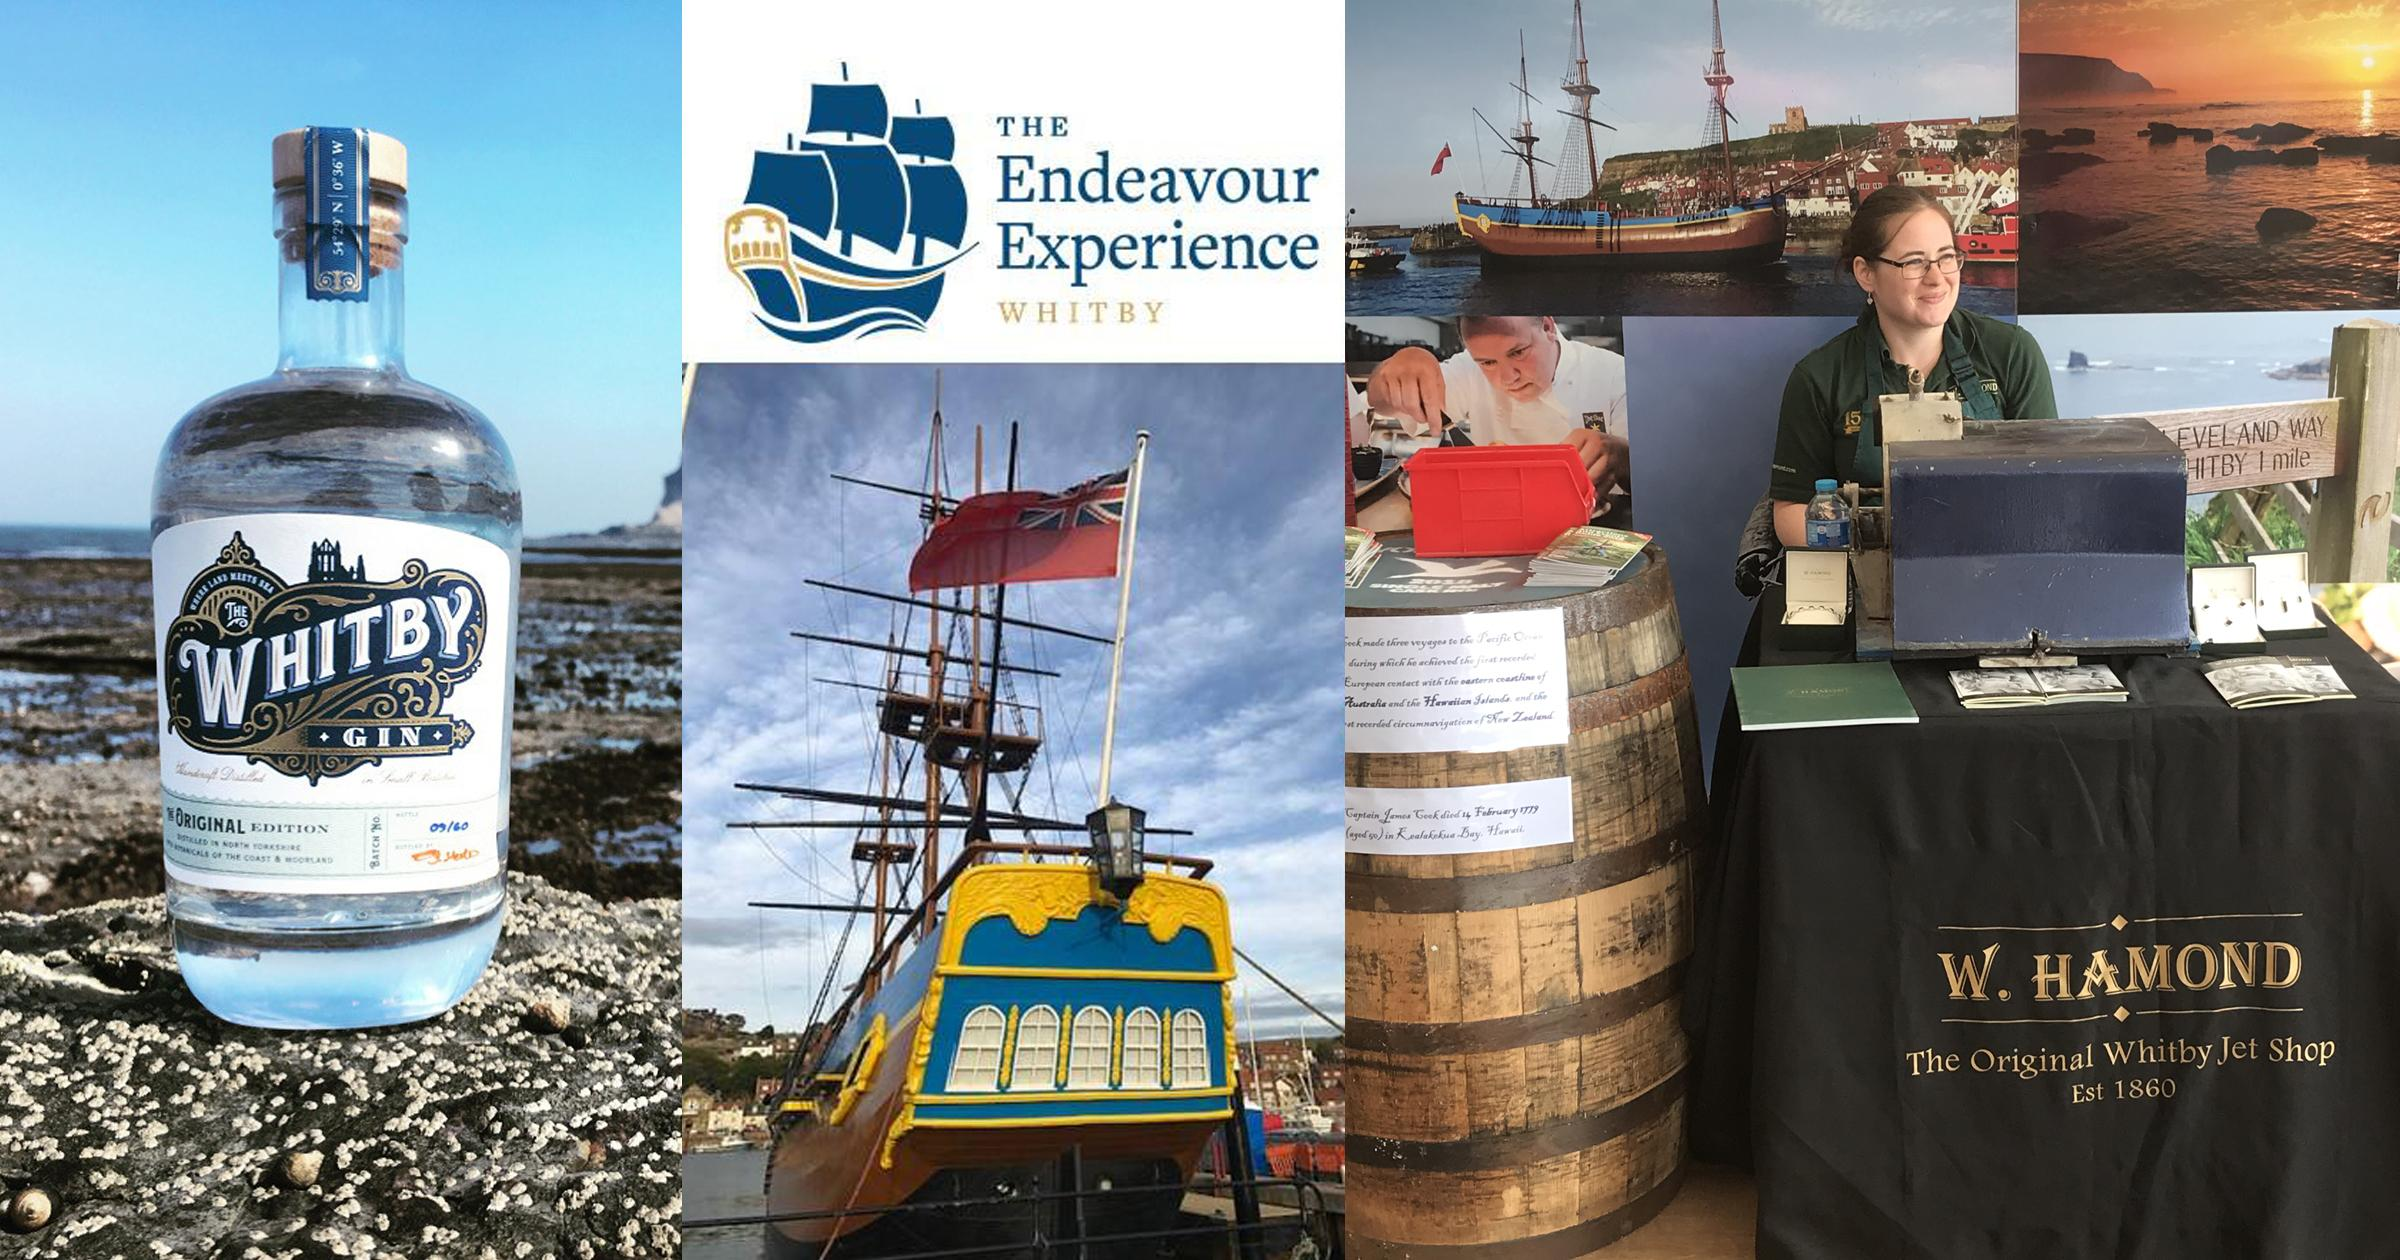 Montage of images showing Whitby Gin, The Endeavour Experience and W Hamond Whitby Jet